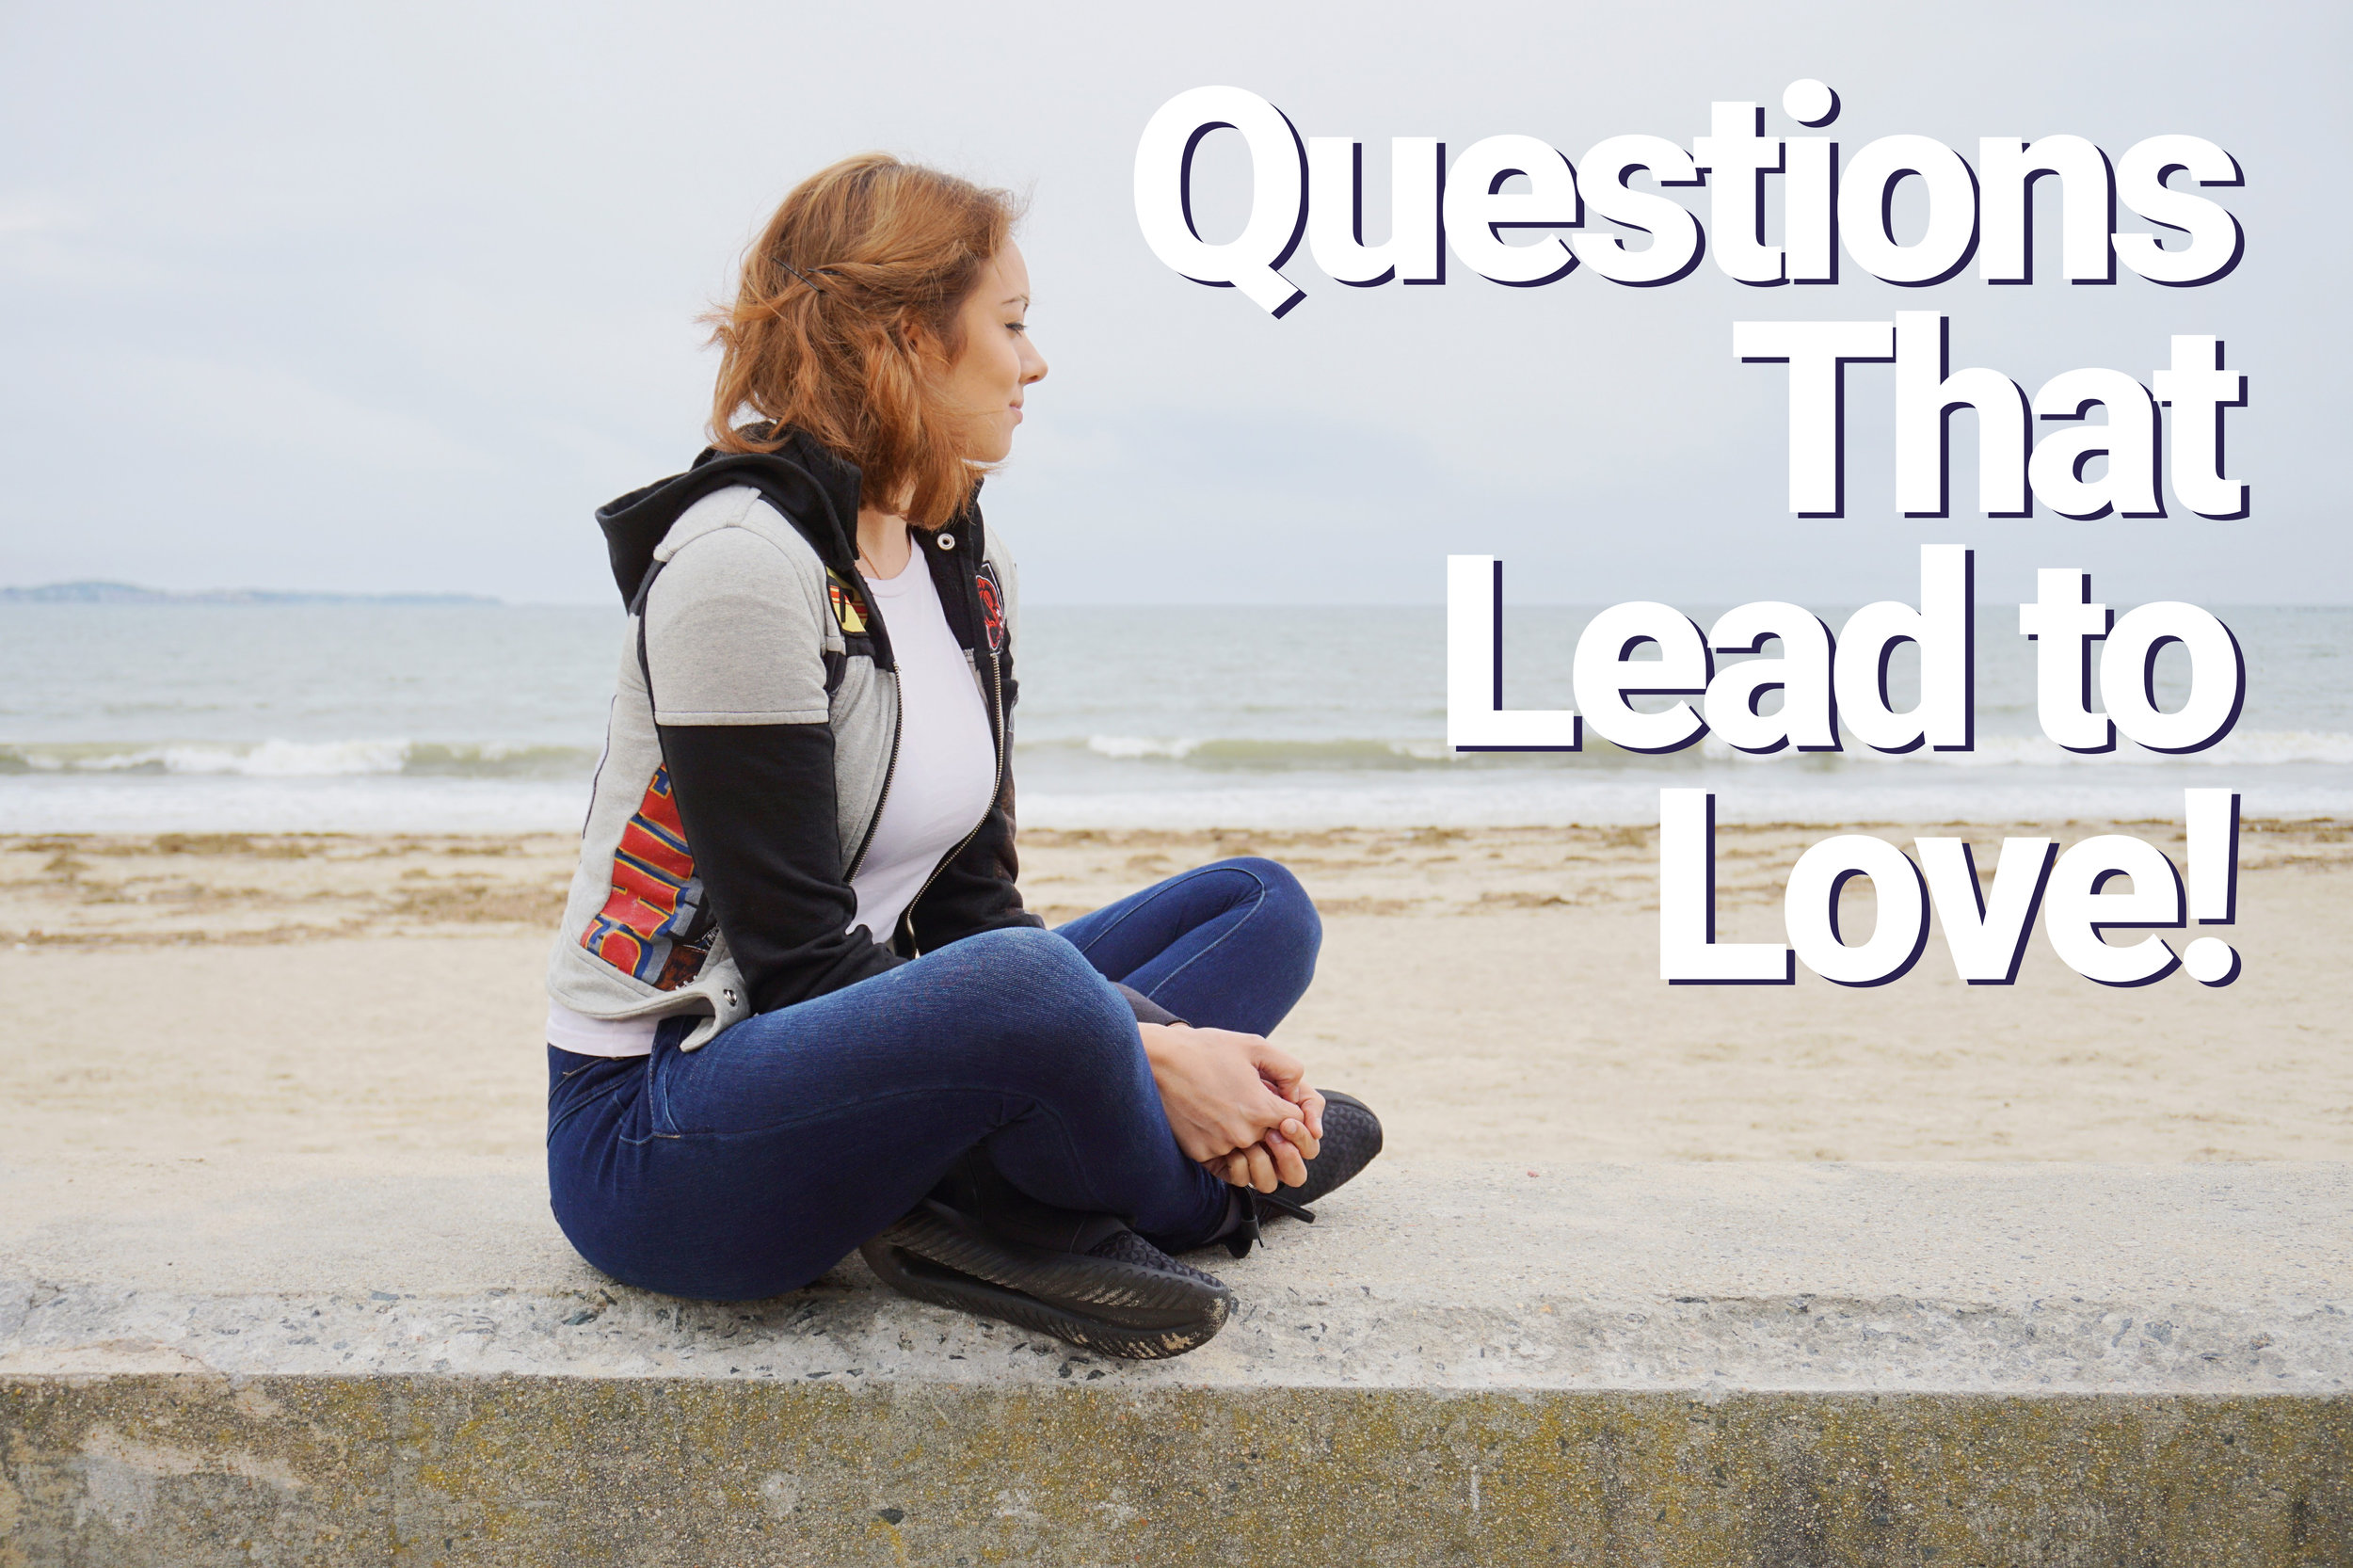 Sitting on the beach. Questions that lead to love post.